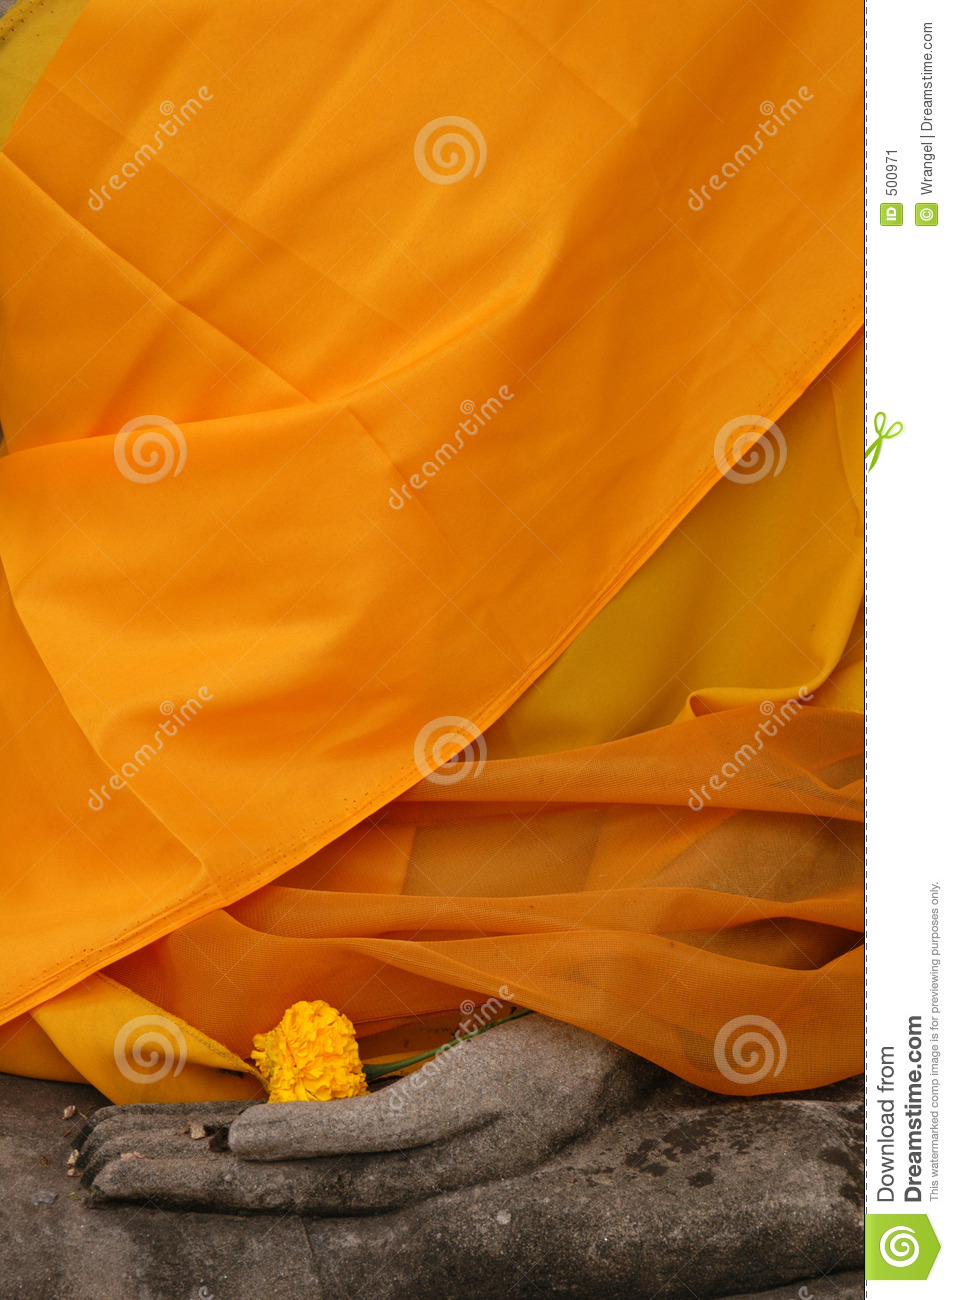 Buddha Statue Wrapped in Orange Fabric